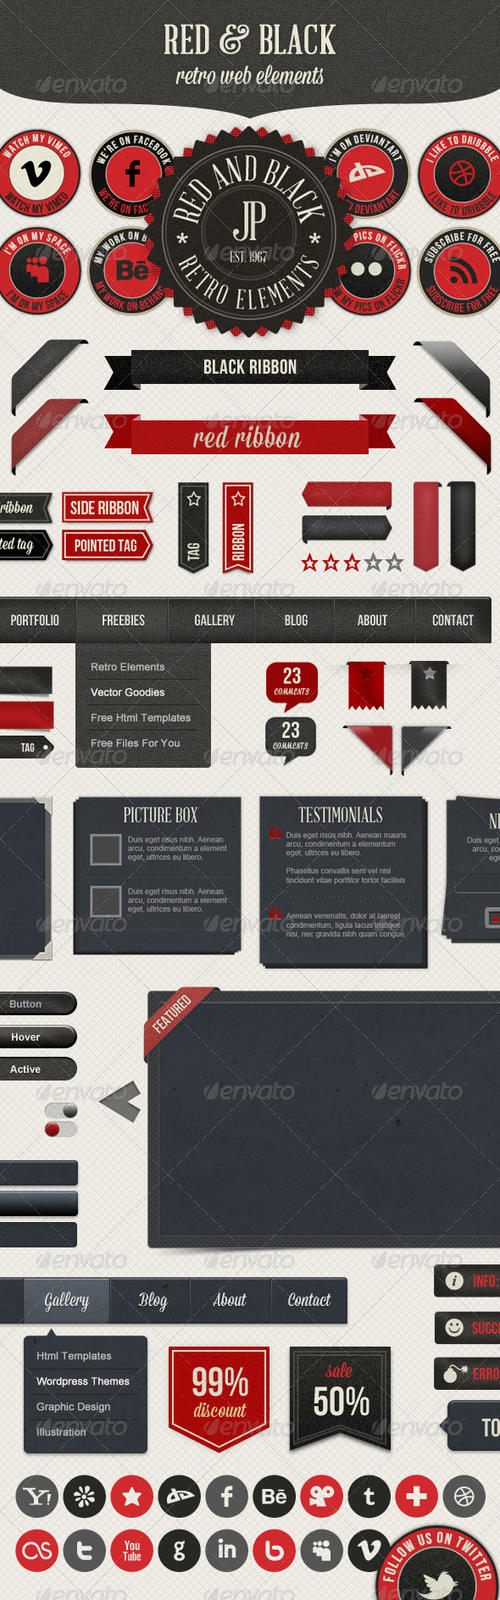 Retro Web Elements - Red and Black by gojol23